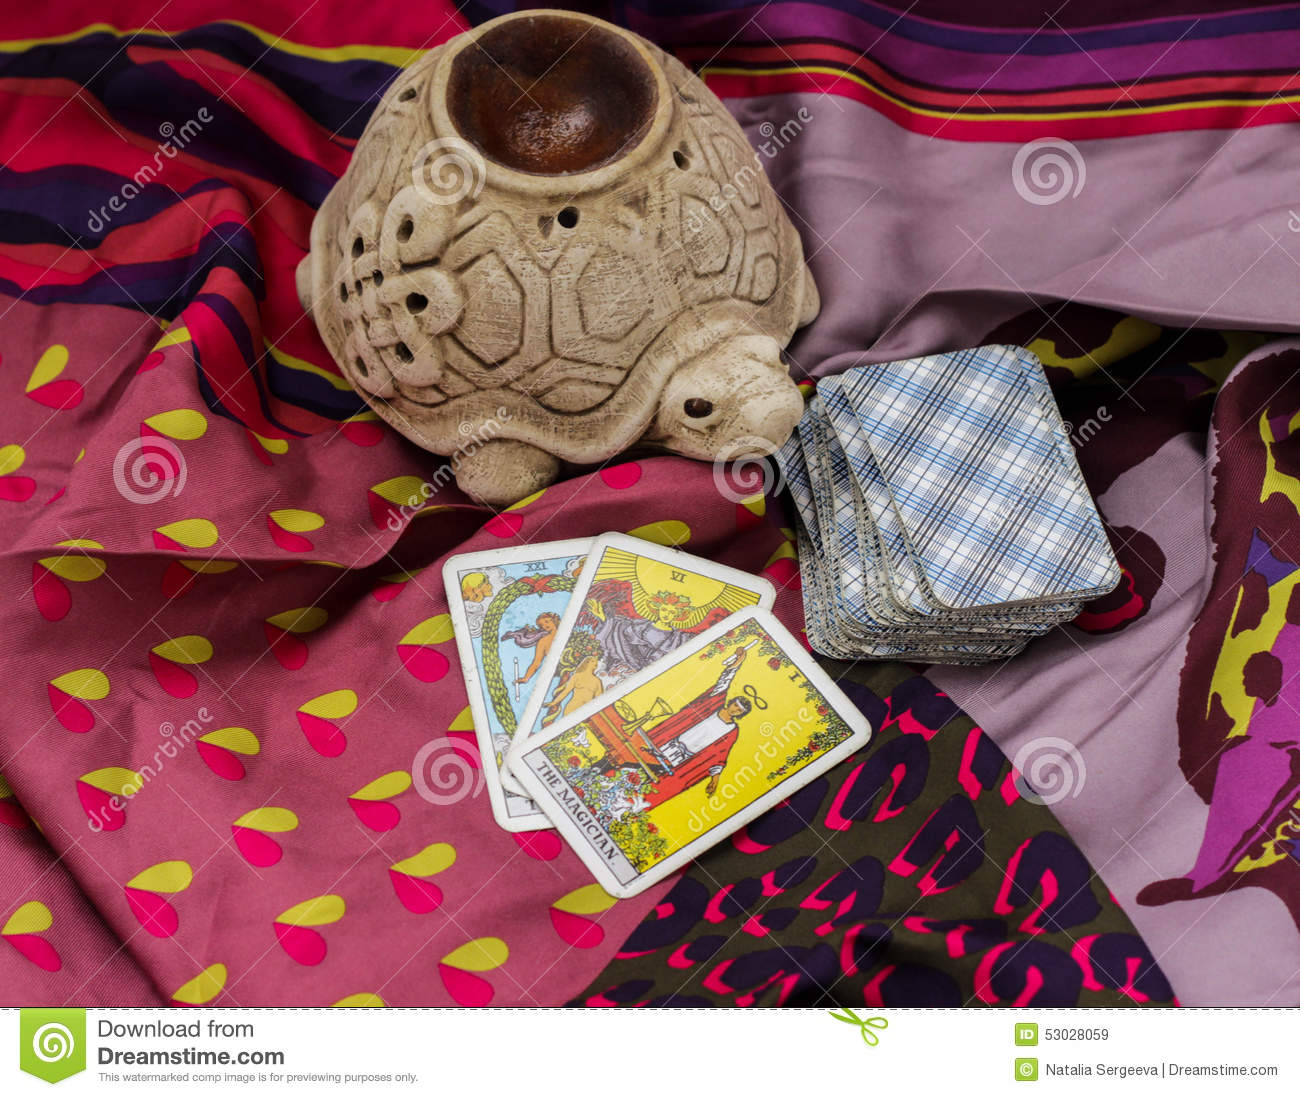 Taro cards stock image  Image of moon, magical, cult - 53028059